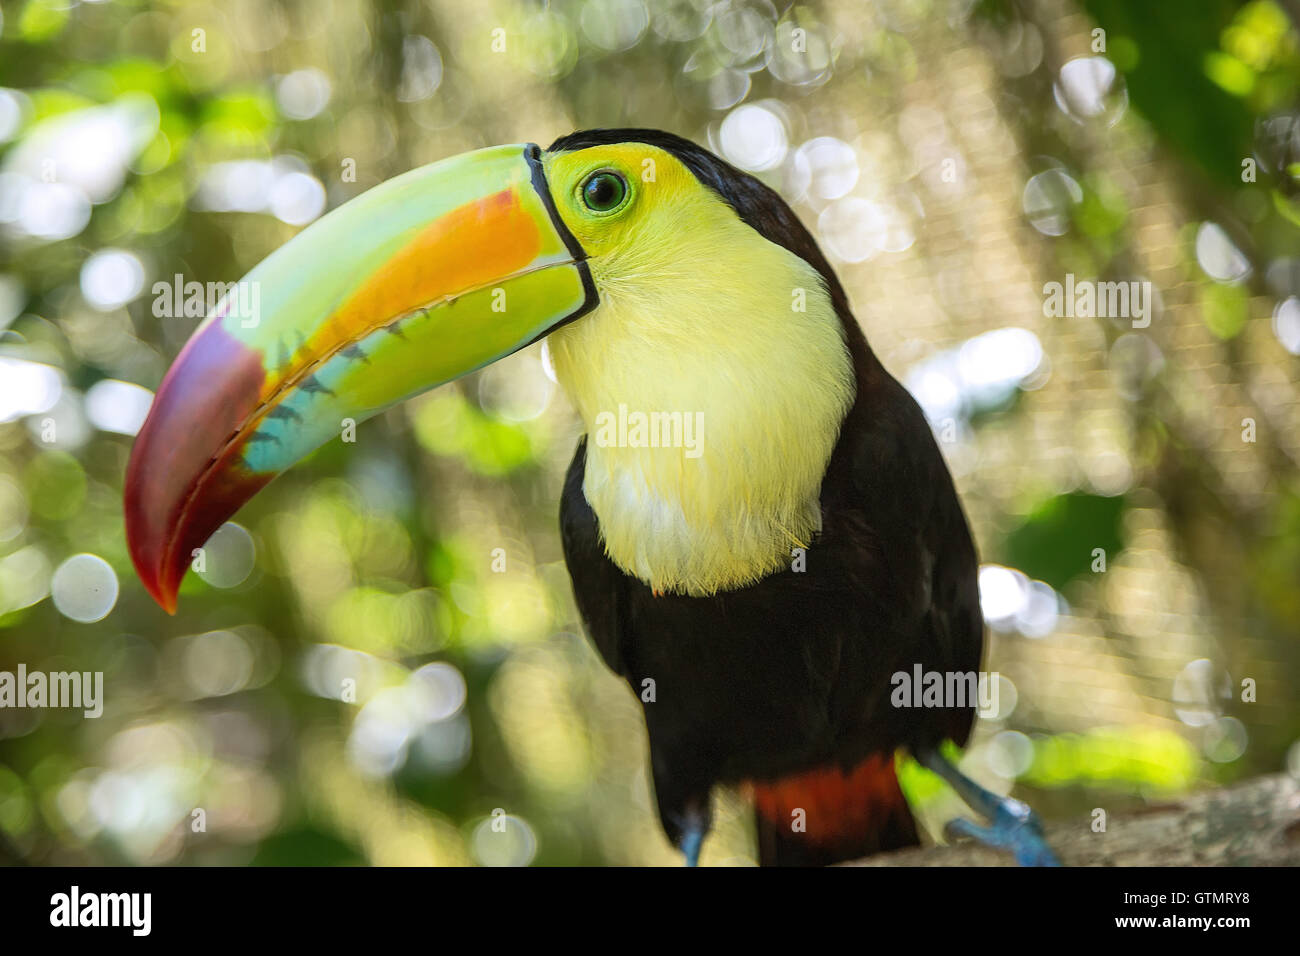 A close-up of a Keel-billed toucan in Belize - Stock Image